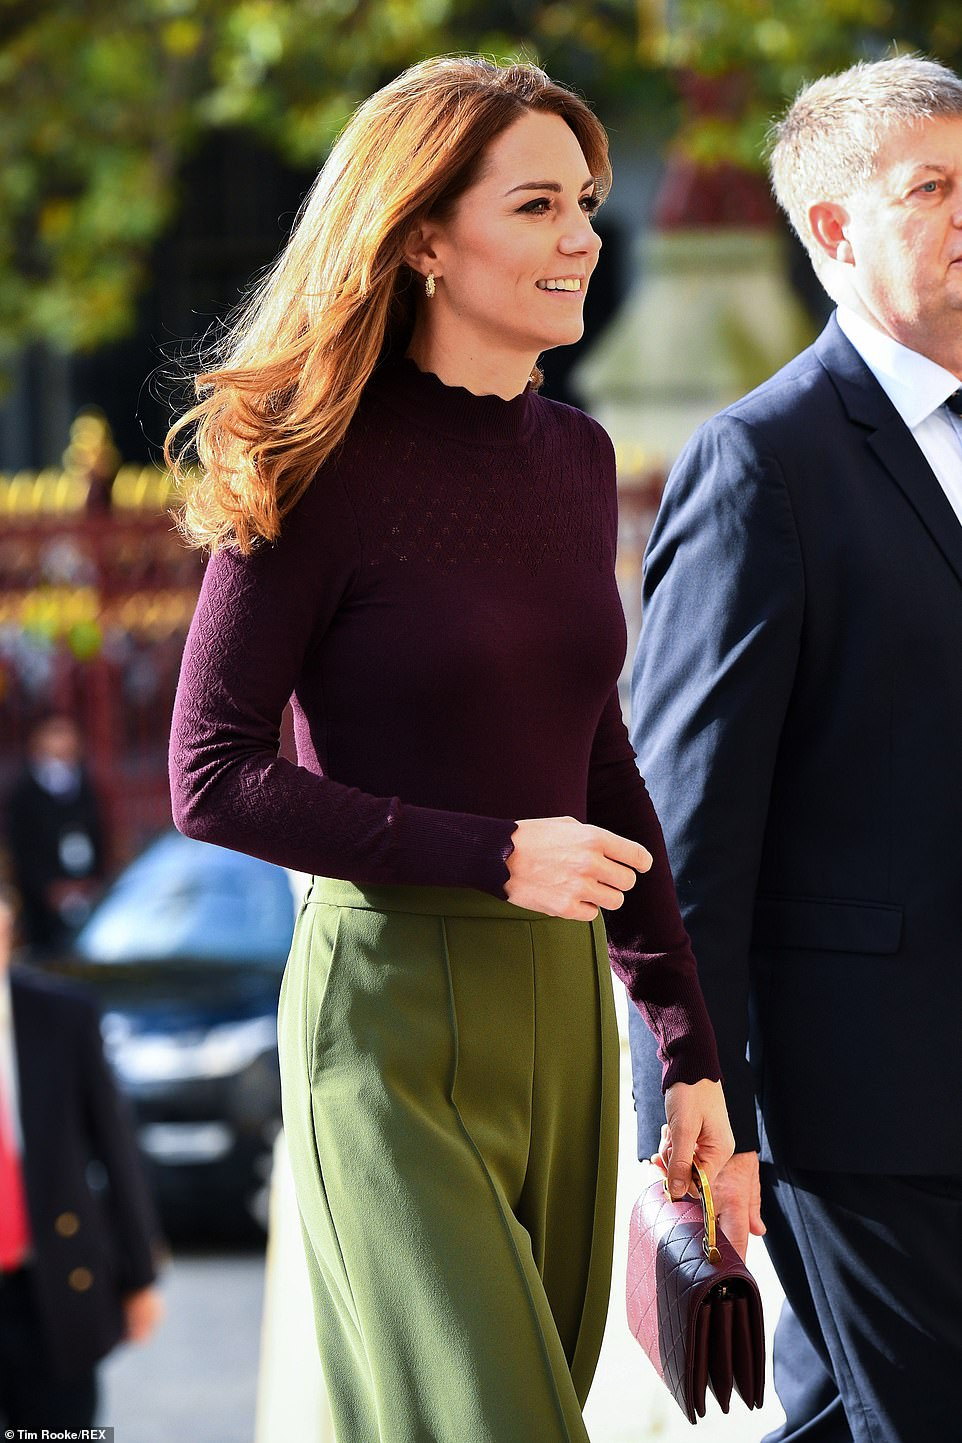 Kate Middleton Stuns in Green Culottes, a Plum Sweater, and Matching Chanel Bag at Angela Marmont Centre